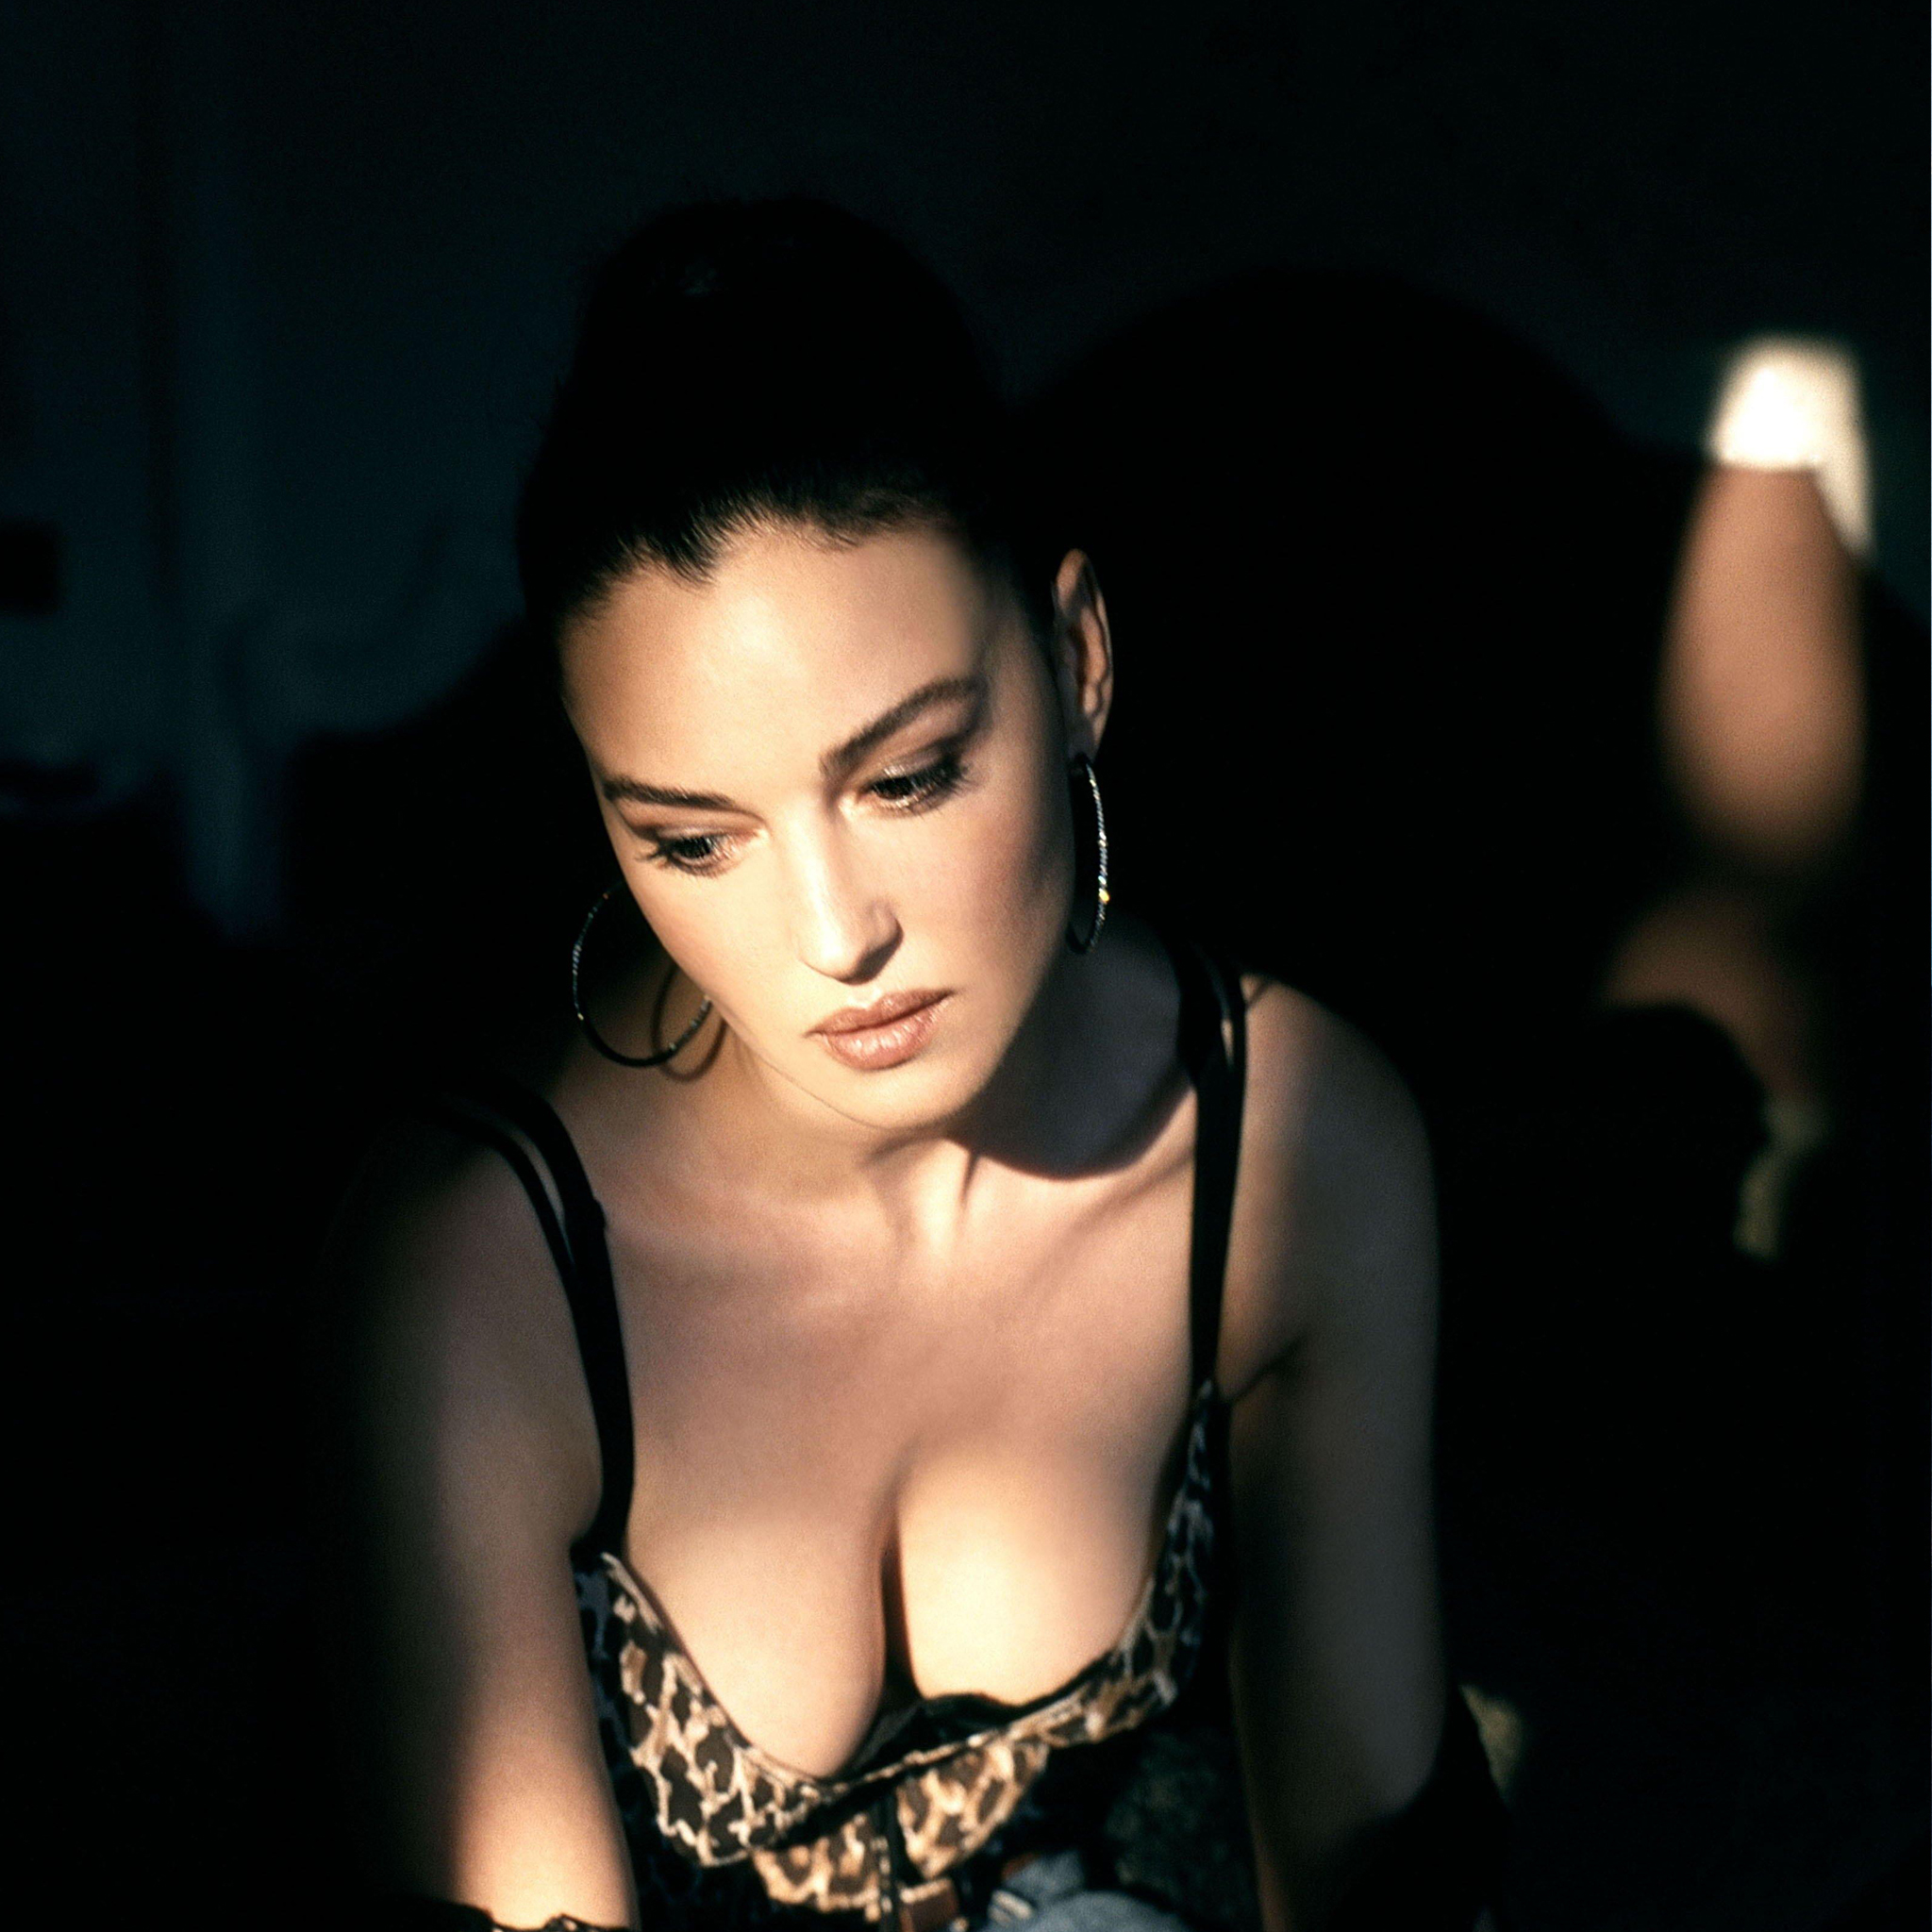 Monica_Belluci_3_Wallpapers_iPad